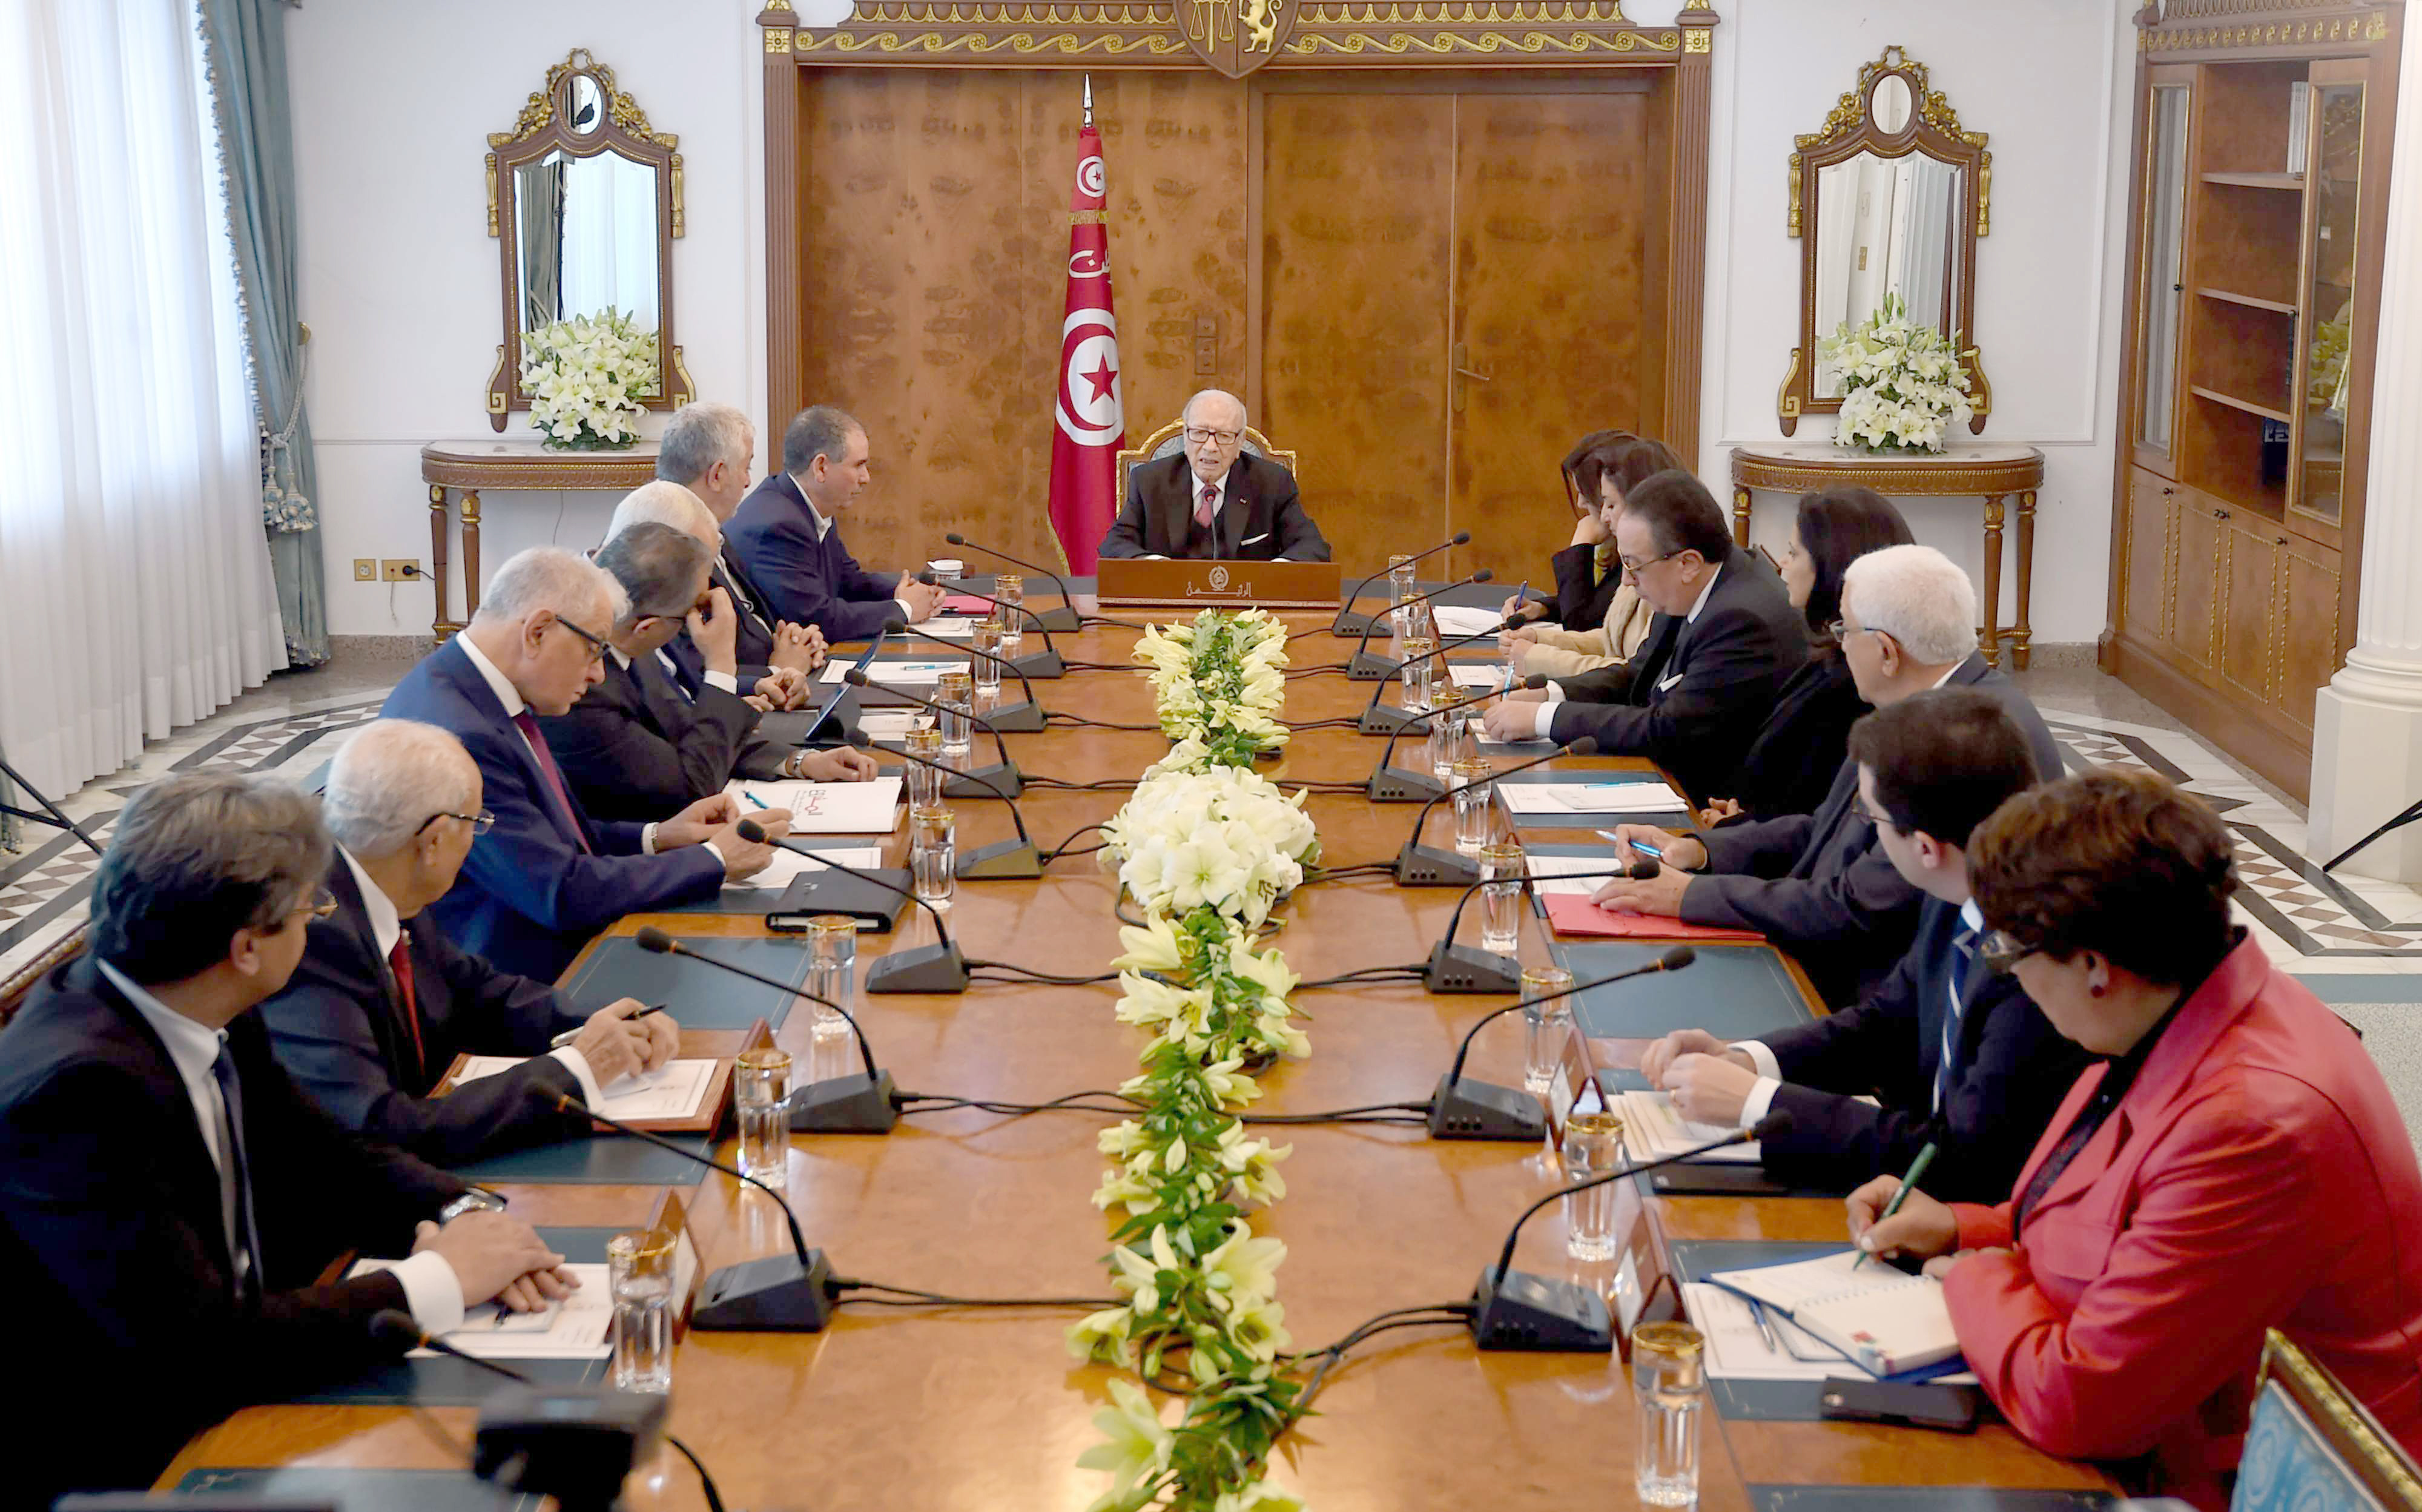 Gathering clouds. Tunisian President Beji Caid Essebsi (C) attends a meeting with political parties, unions and employers, last January 13. (AFP)